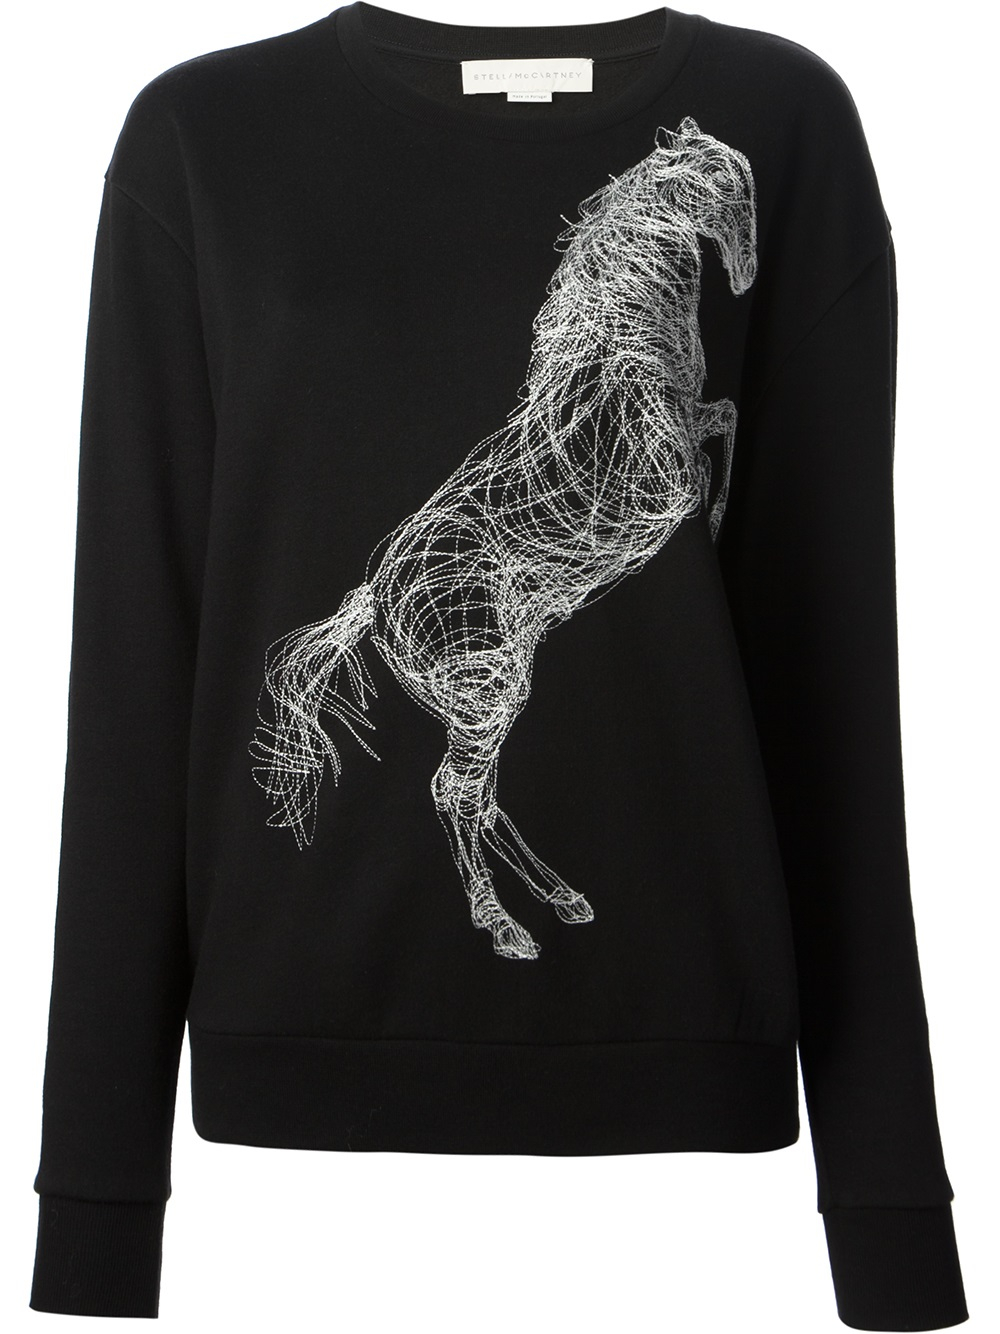 Stella mccartney horse embroidered sweater in black lyst